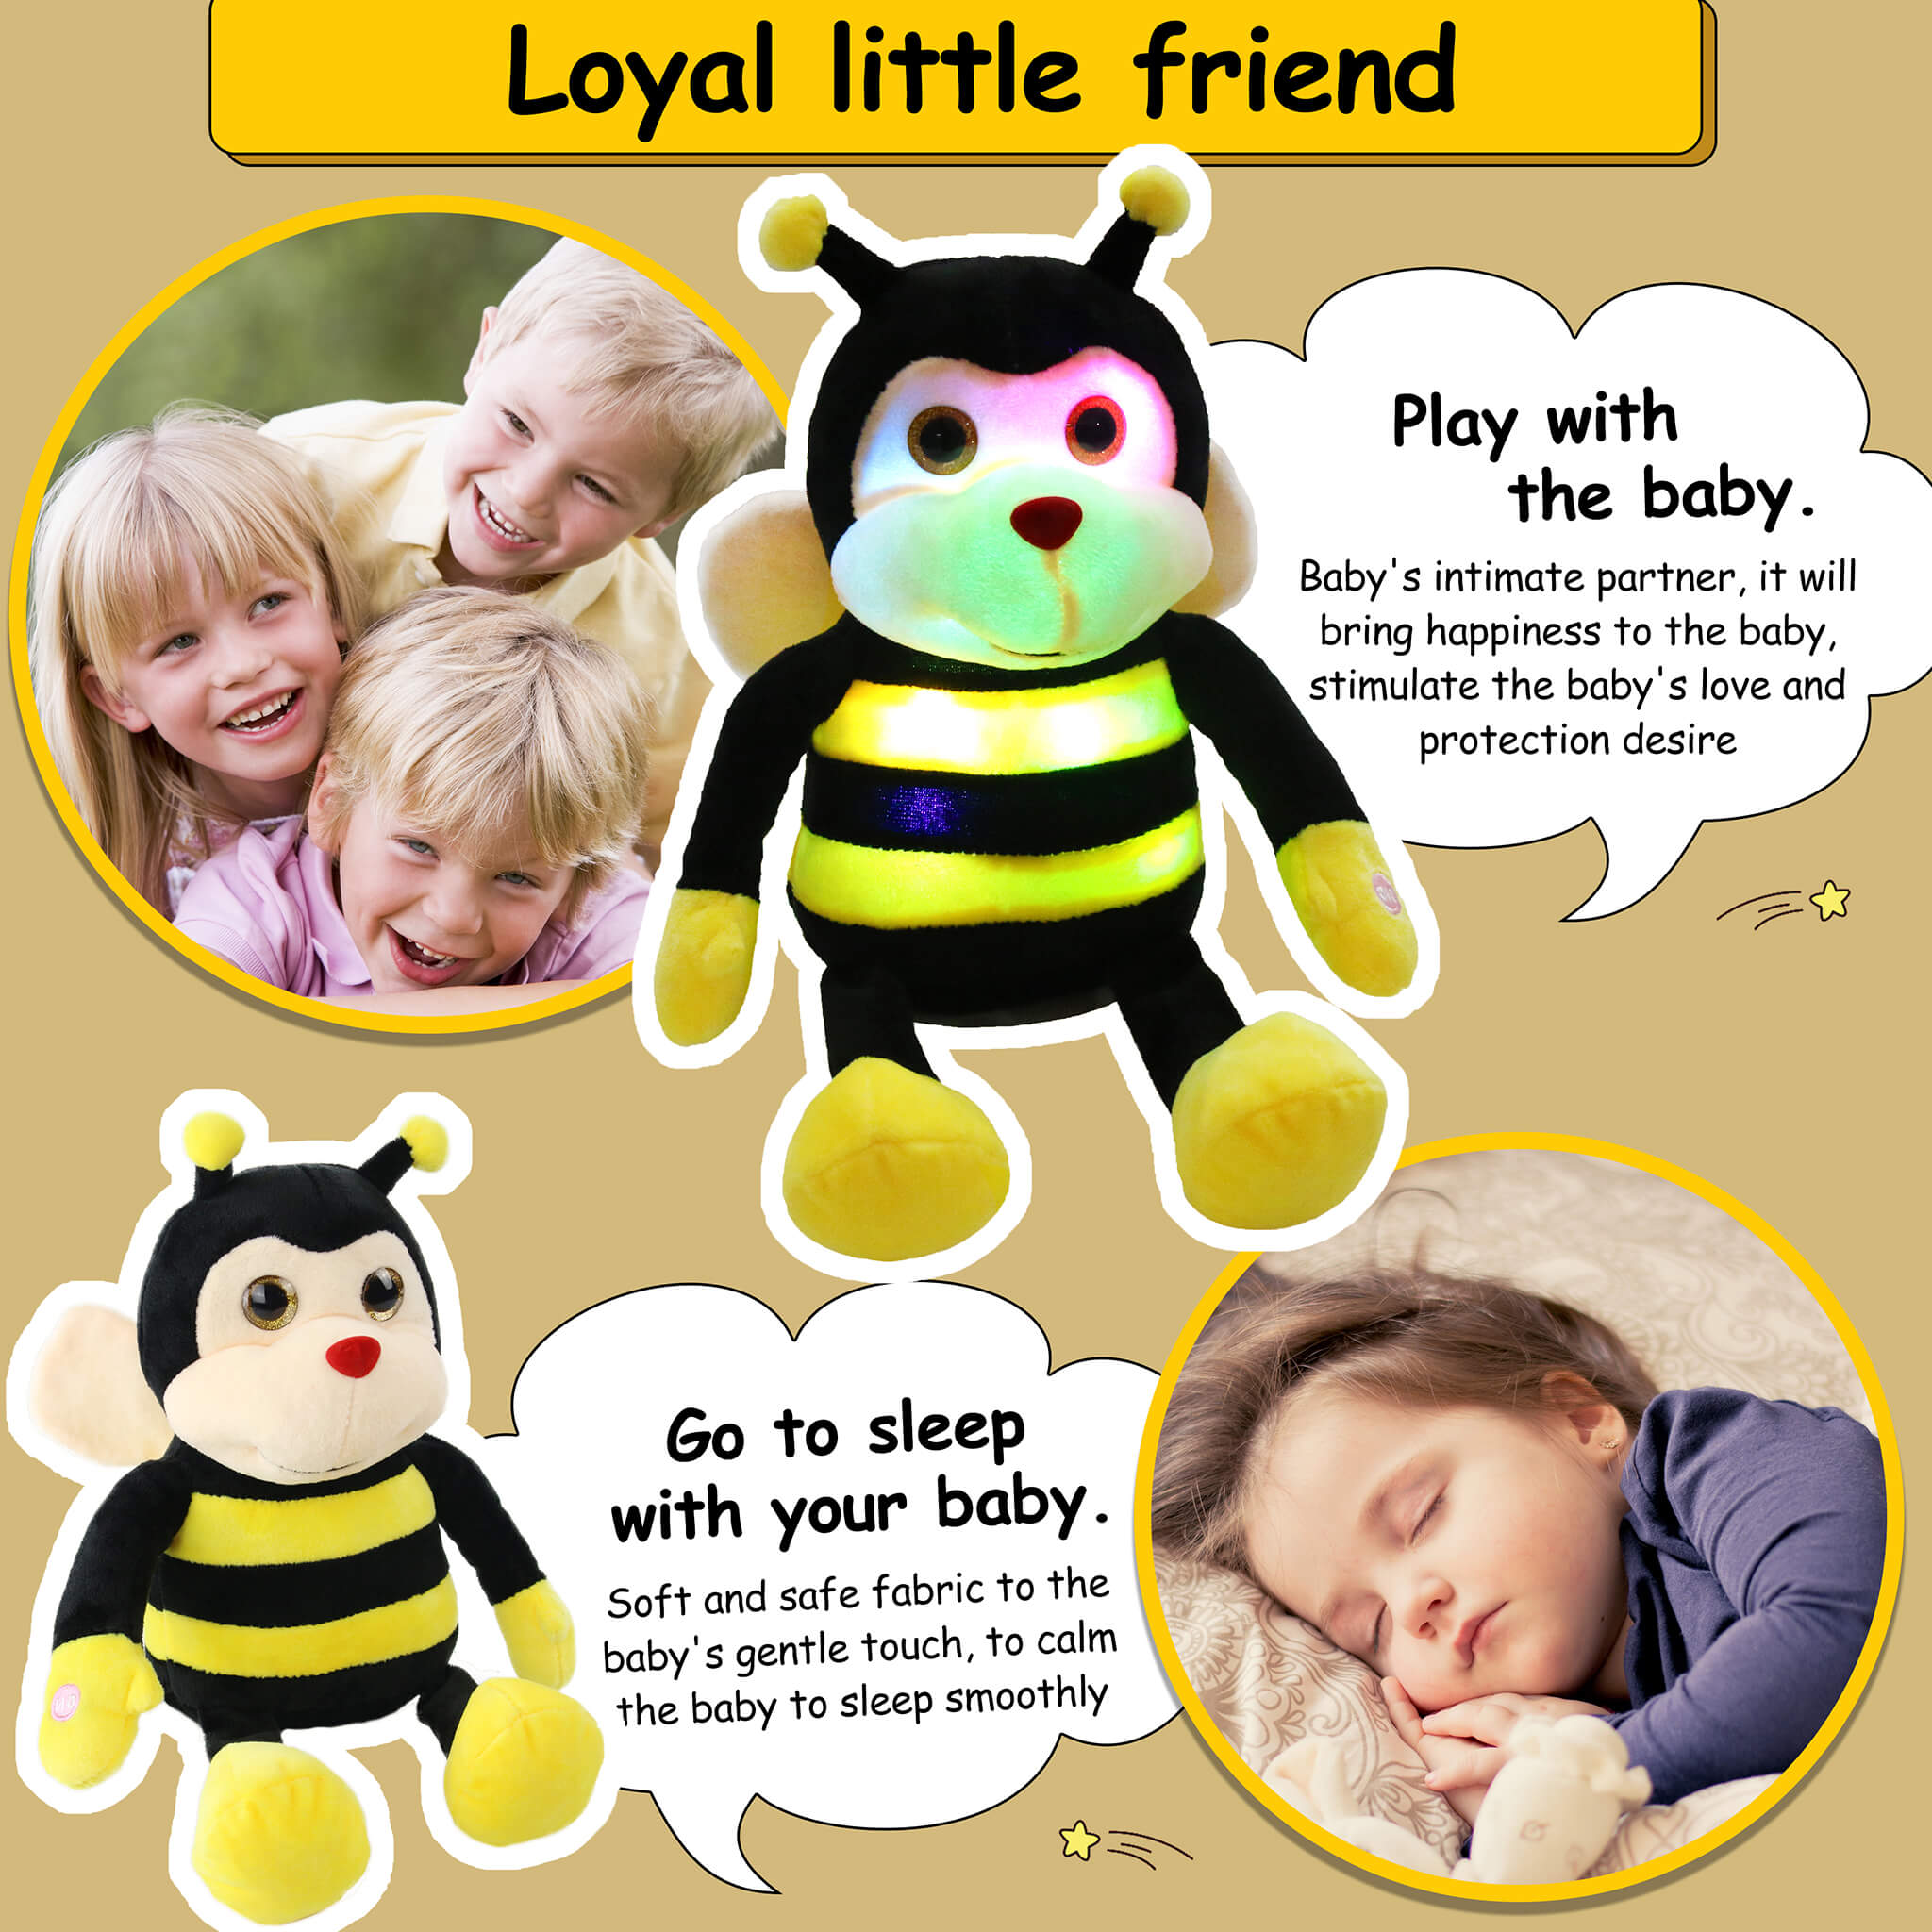 light up stuffed bumble bee plush toy, 10.5'' | Bstaofy - Glow Guards